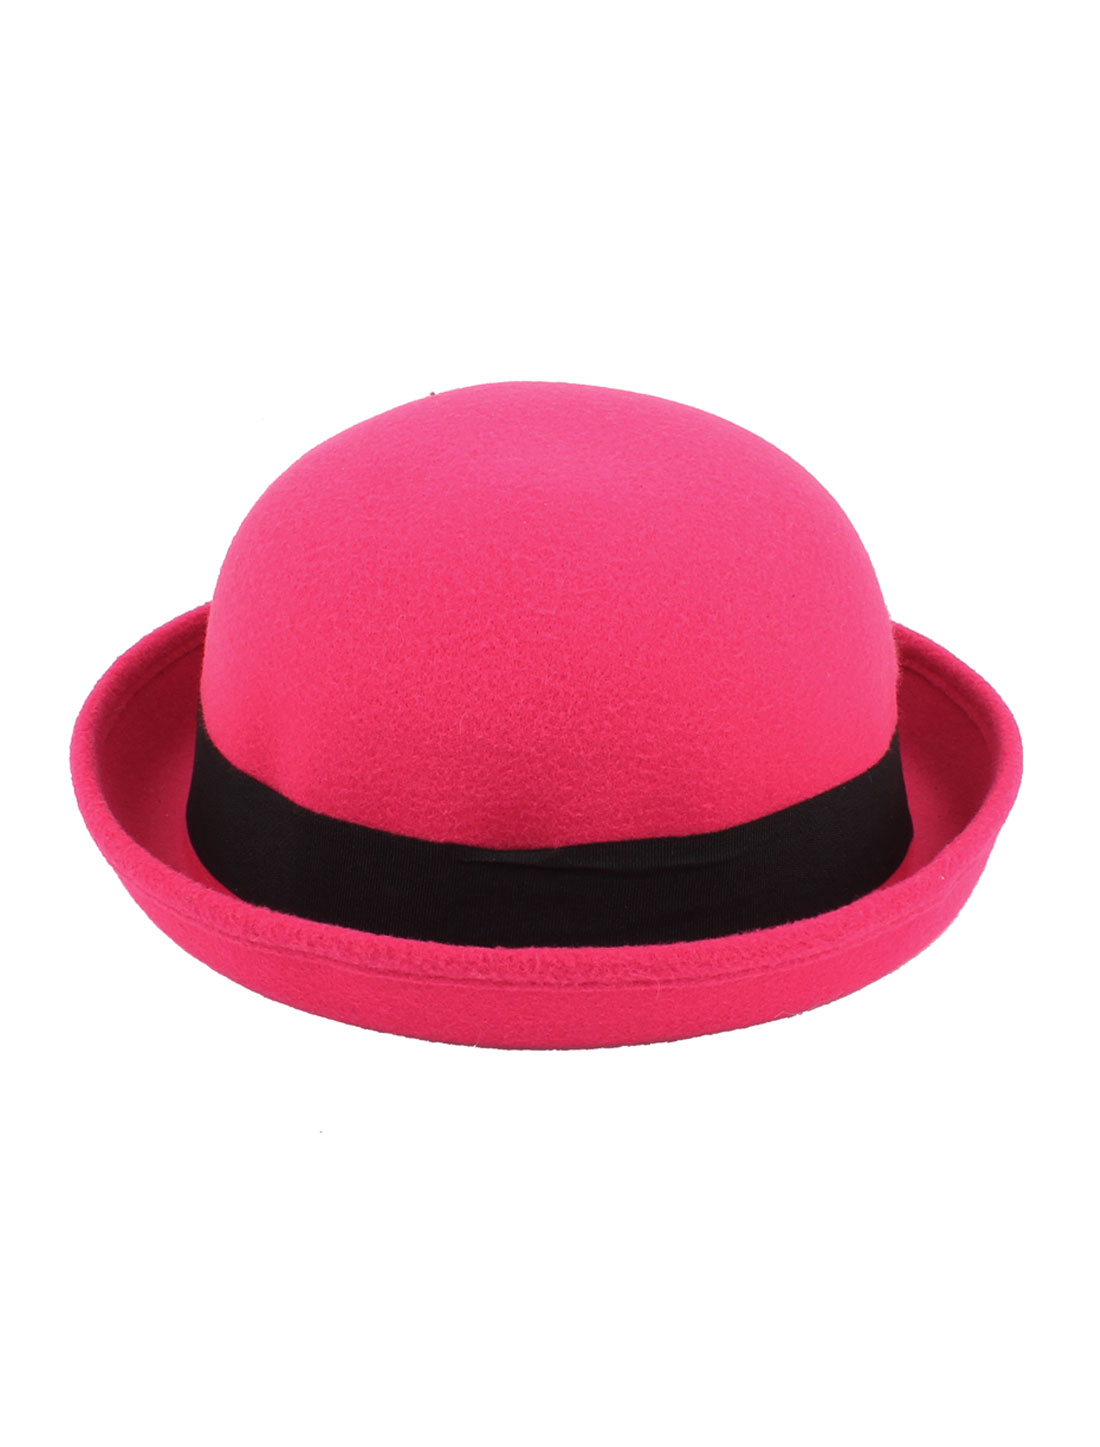 Girl Travel Black Band Rolled Cotton Blends Roll up Brim Worsted Bowler Hat Cap Fuchsia